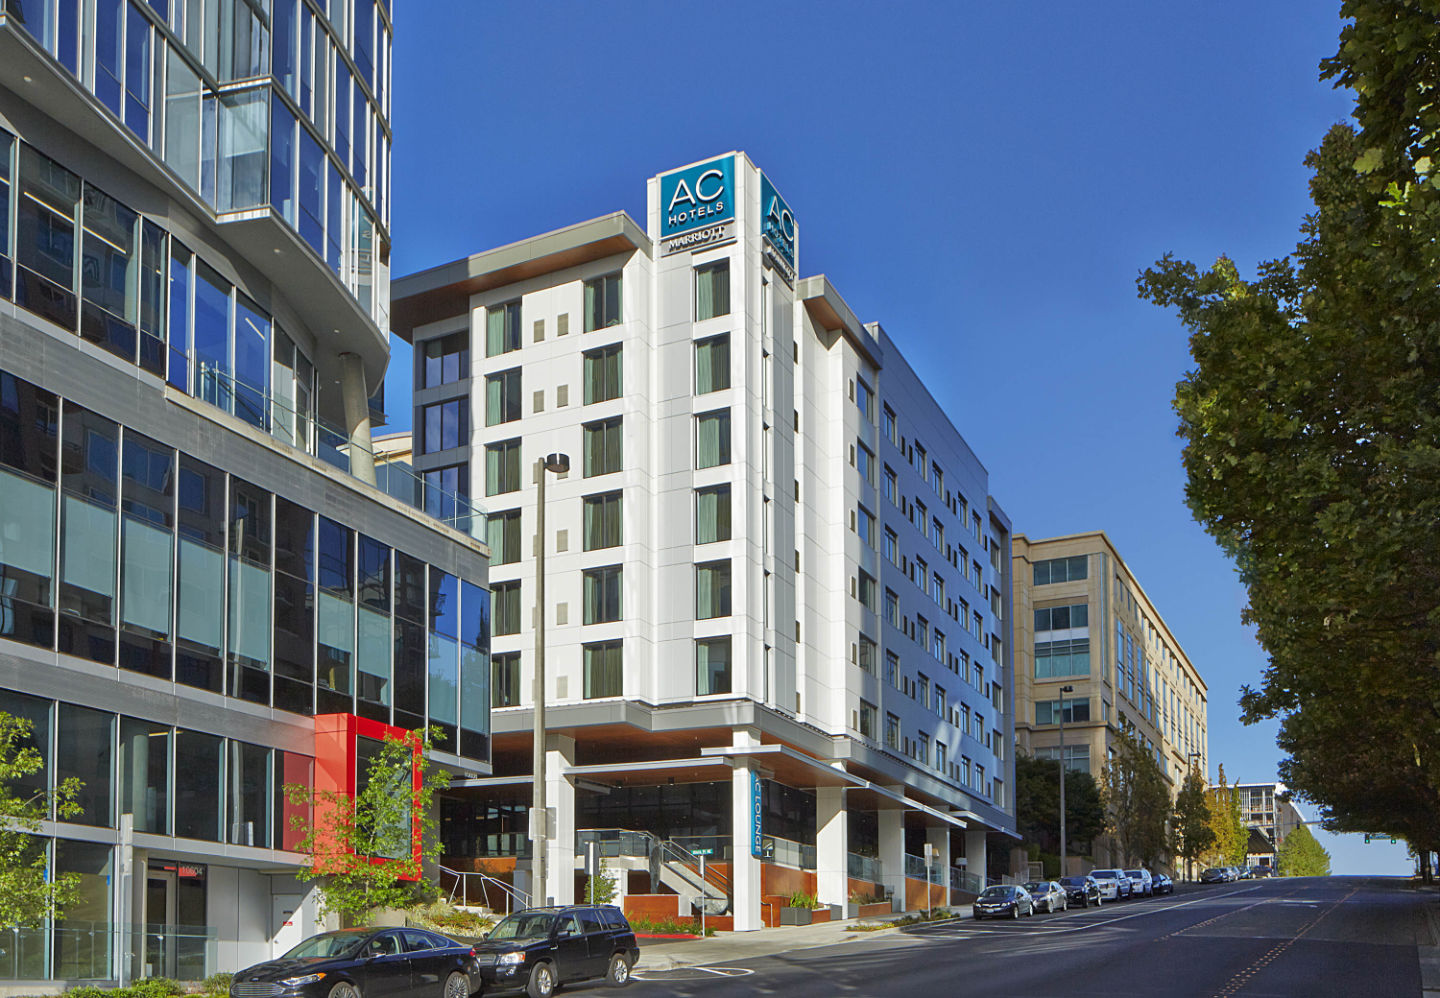 South korean firm acquires ac hotel by marriott seattle for Design hotel jena